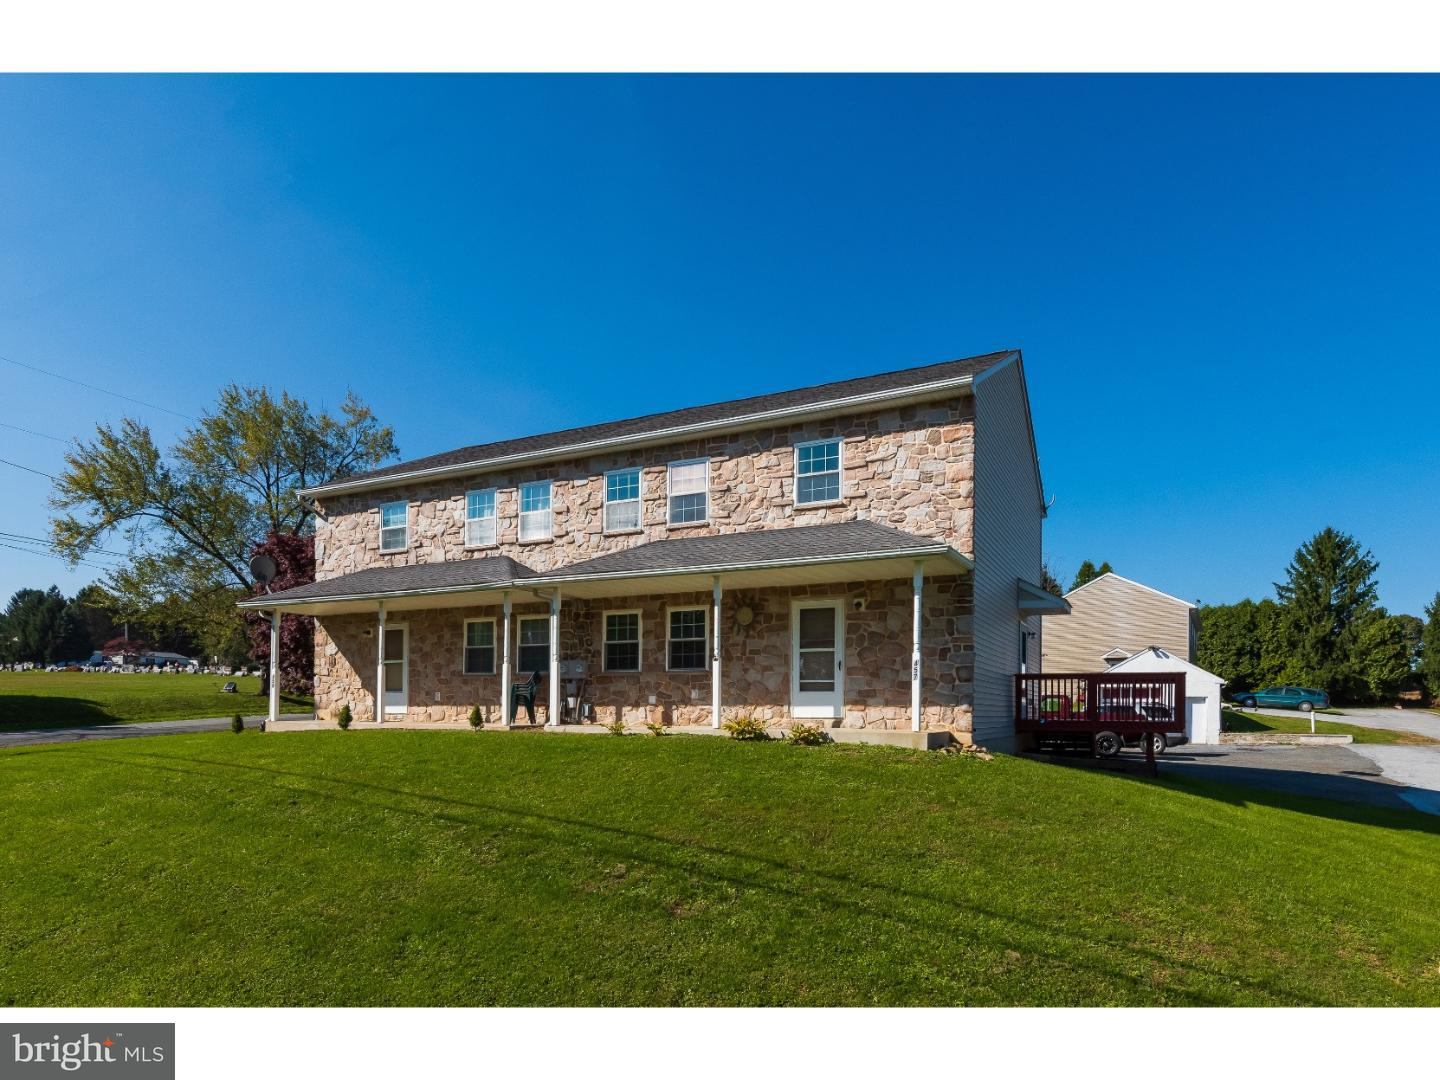 Single Family Home for Sale at 321 JAMES Street Honey Brook, Pennsylvania 19344 United States